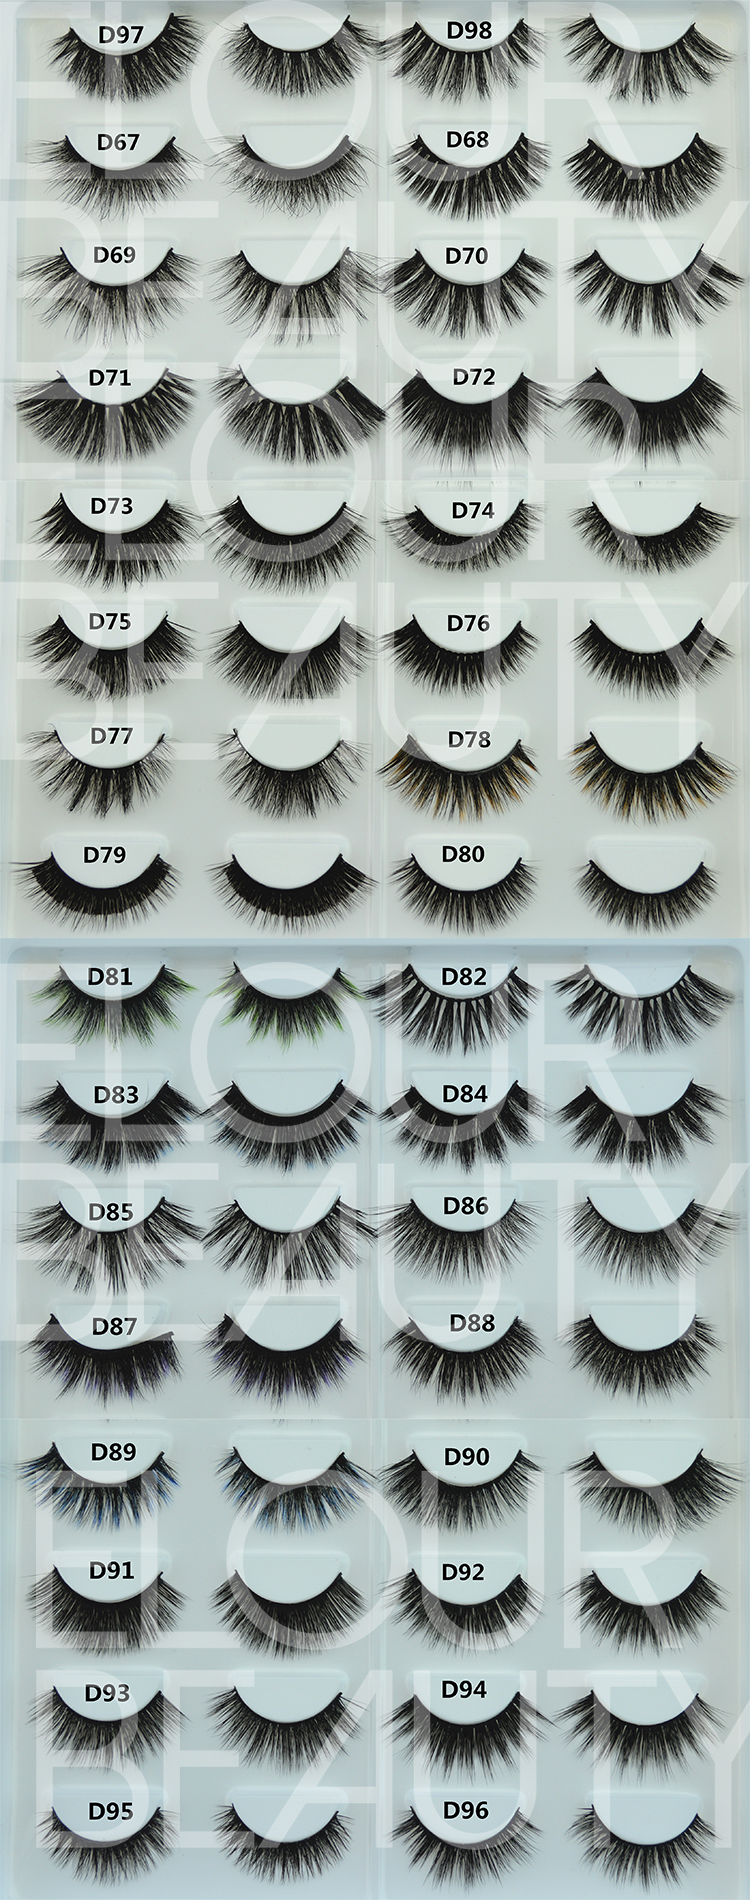 hundreds styles of 3d silk lashes can do in self-adhesive eyelashes.jpg